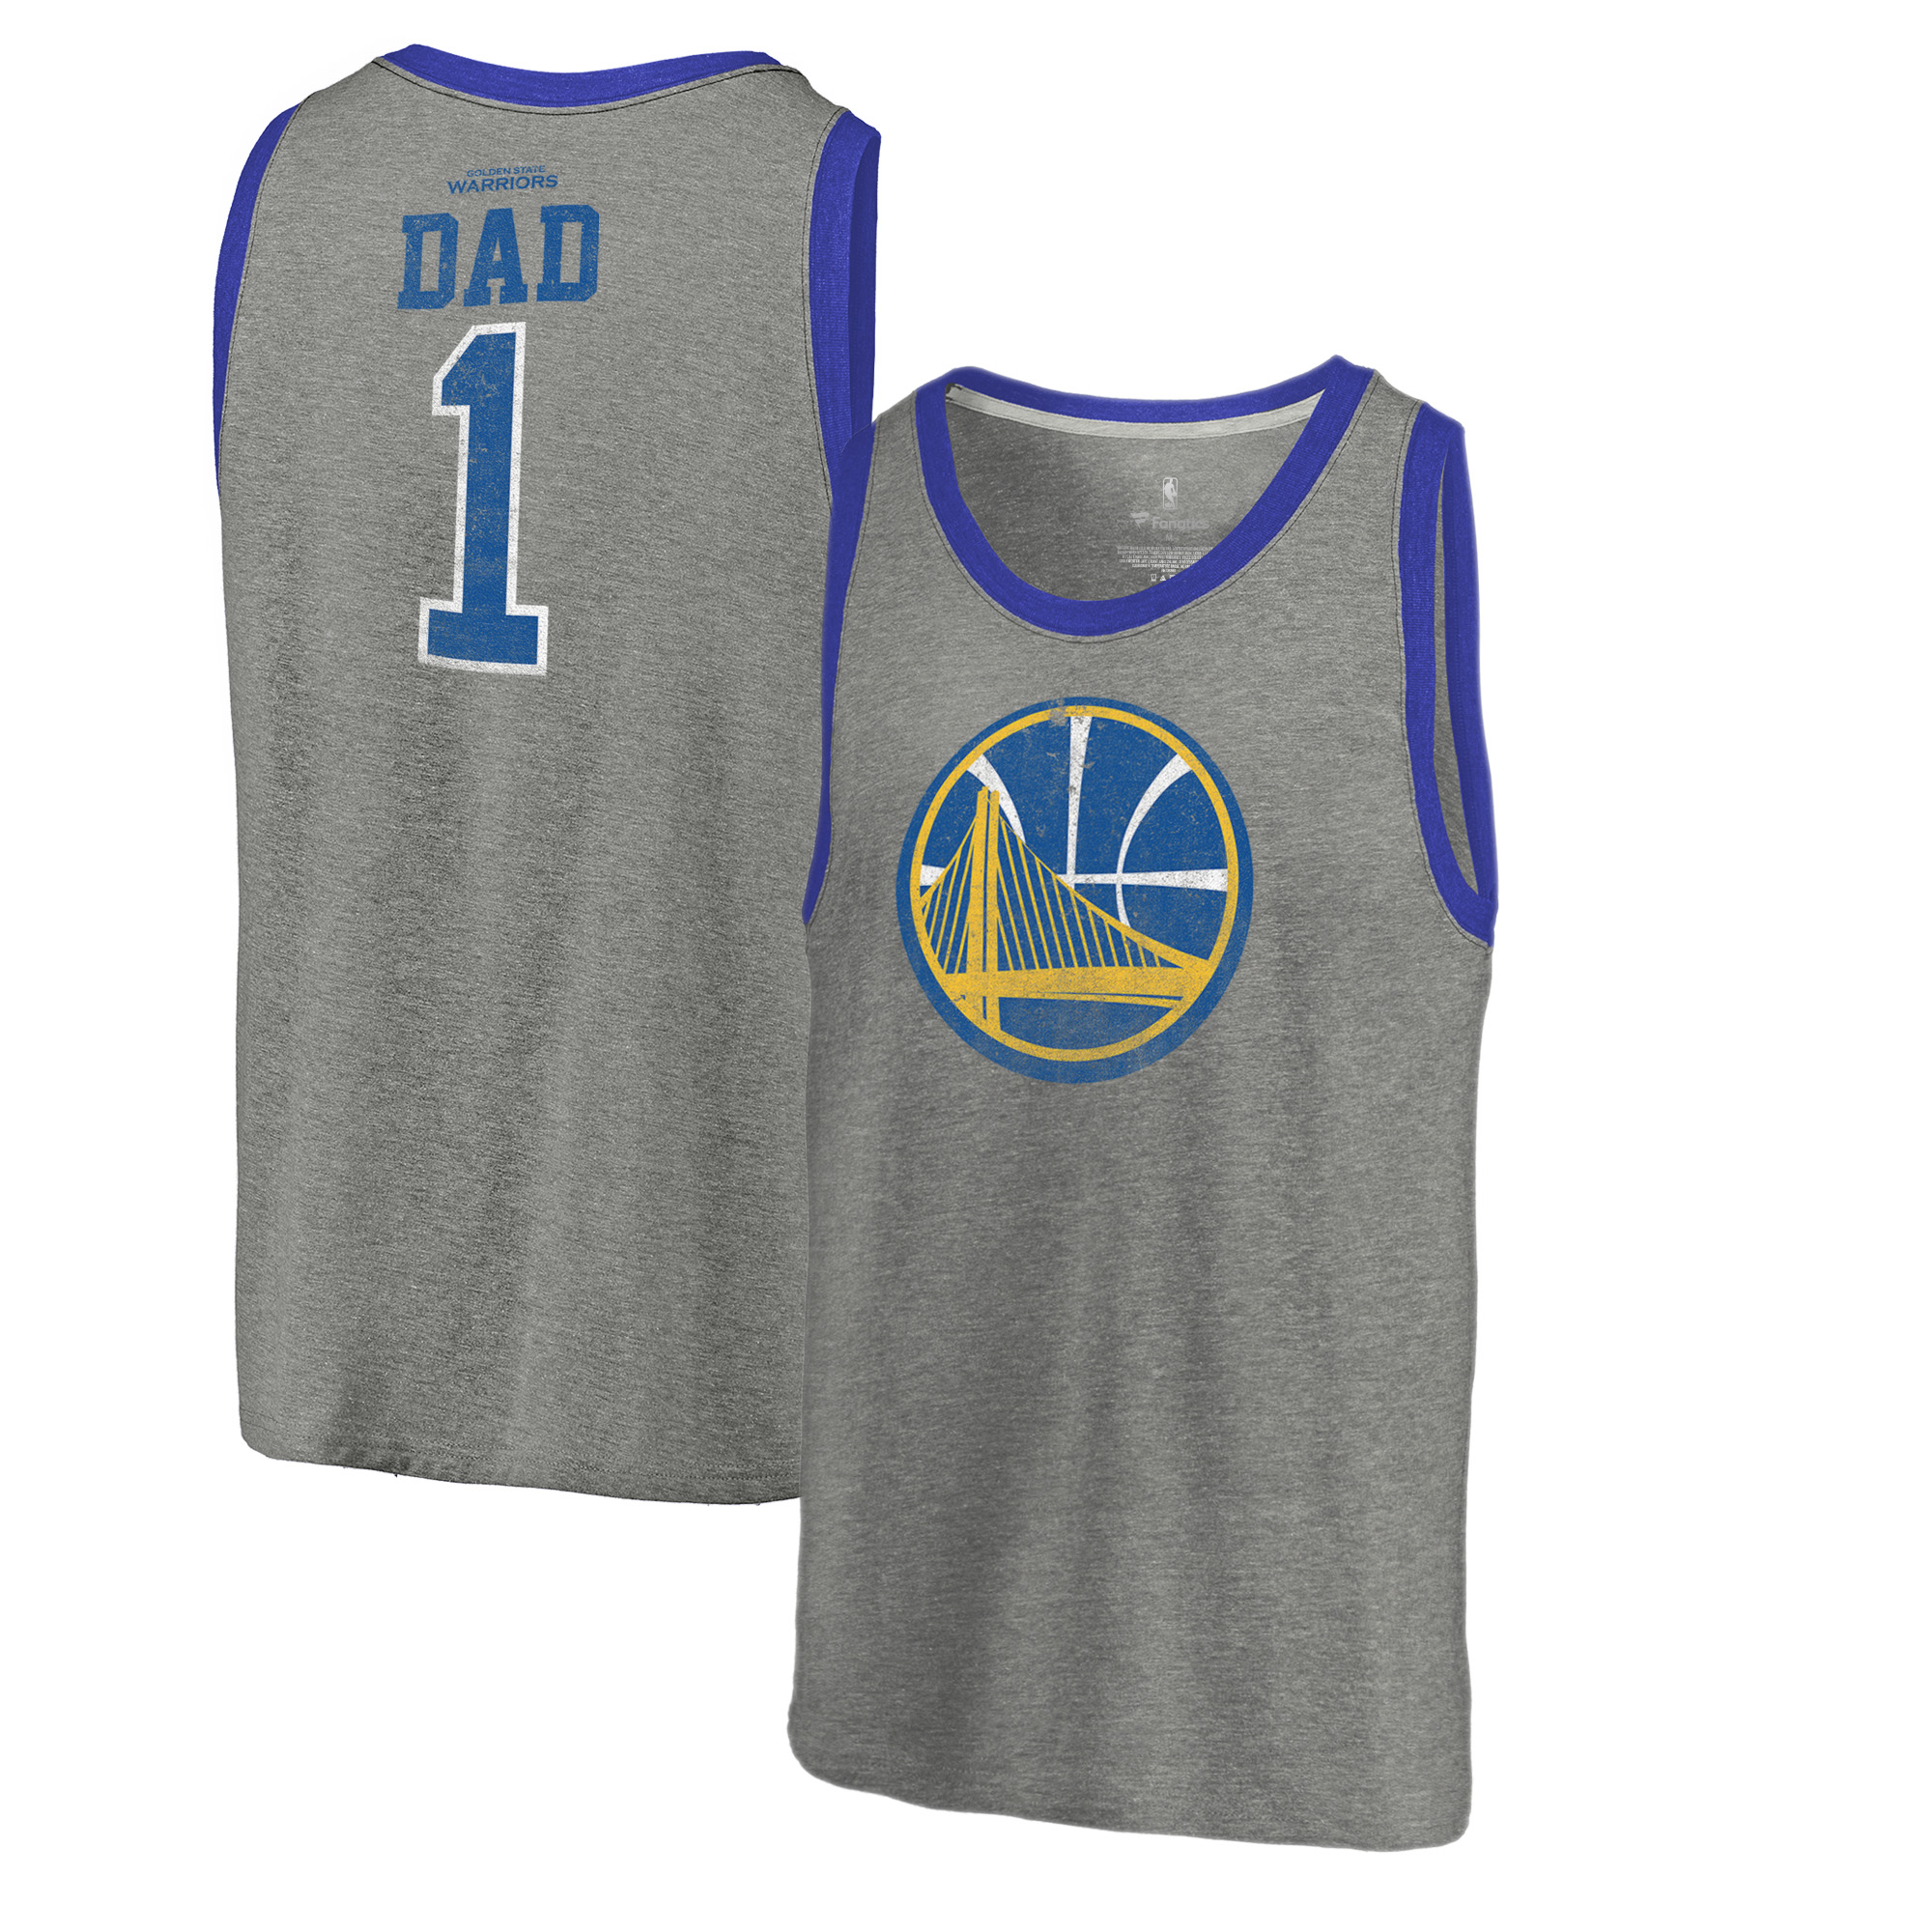 Golden State Warriors Fanatics Branded Greatest Dad Tri-Blend Tank Top - Heathered Gray